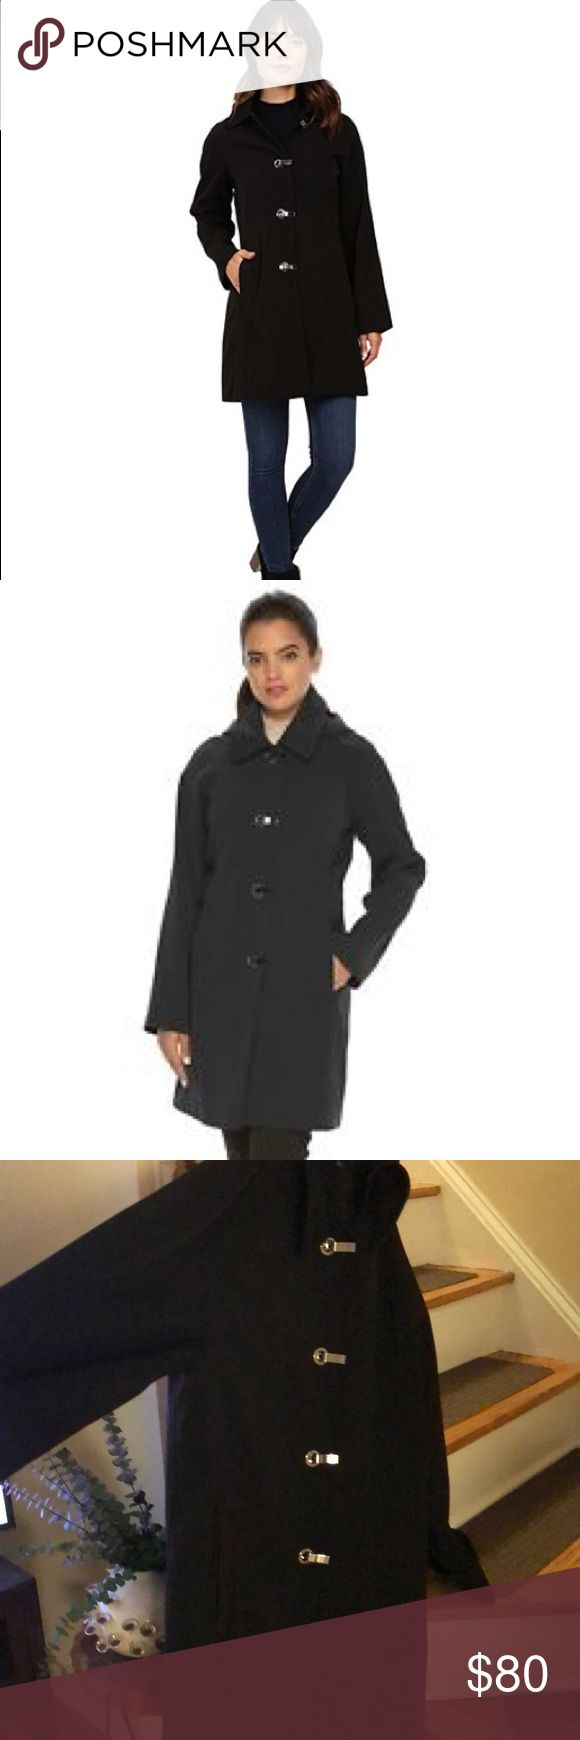 London Fog Black Trench rain coat women's Sz XL Excellent condition. Worn less than a handful of times. Gorgeous deep true black rain/trench coat by London Fog. WOMENS size XL. Nice weight. This is not a flimsy coat.   Nicely covers down to just above knee to keep you as dry as can be! Removable button hood. One button was replaced but not noticeable. Beautiful shiny silver buckle clasps. Easy to put on and take off. Nice deep pockets. Love this coat - just cleaning out closet. You won't be…